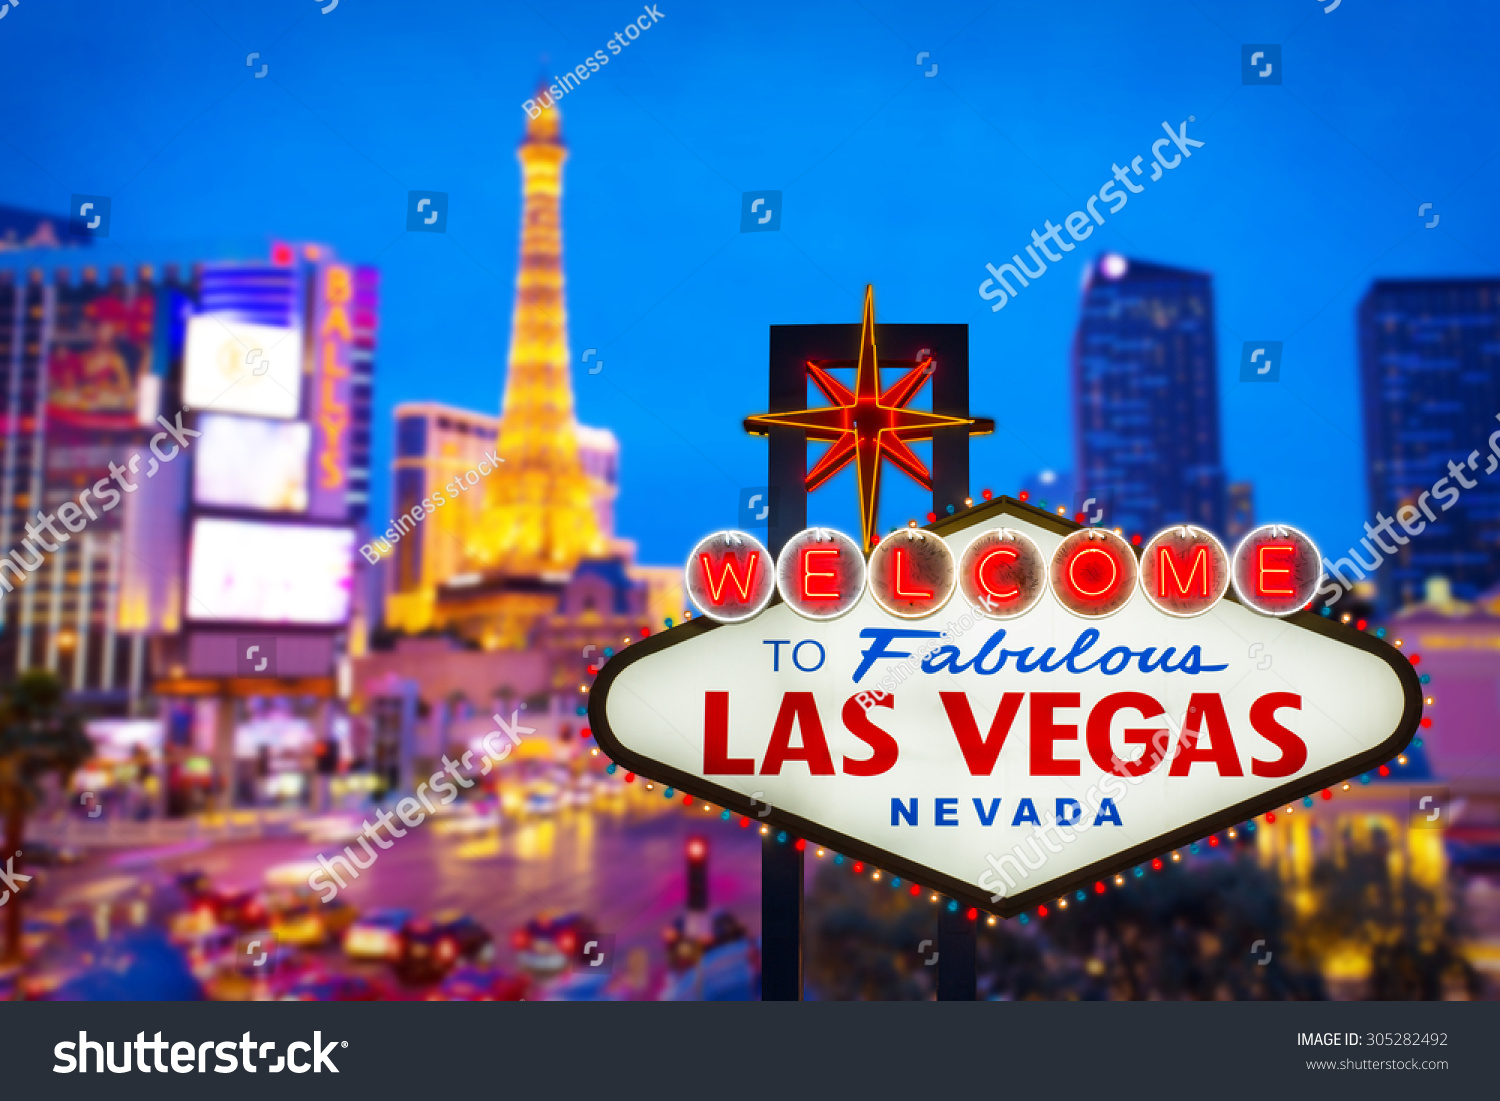 welcome fabulous las vegas nevada sign stock photo 305282492 shutterstock. Black Bedroom Furniture Sets. Home Design Ideas